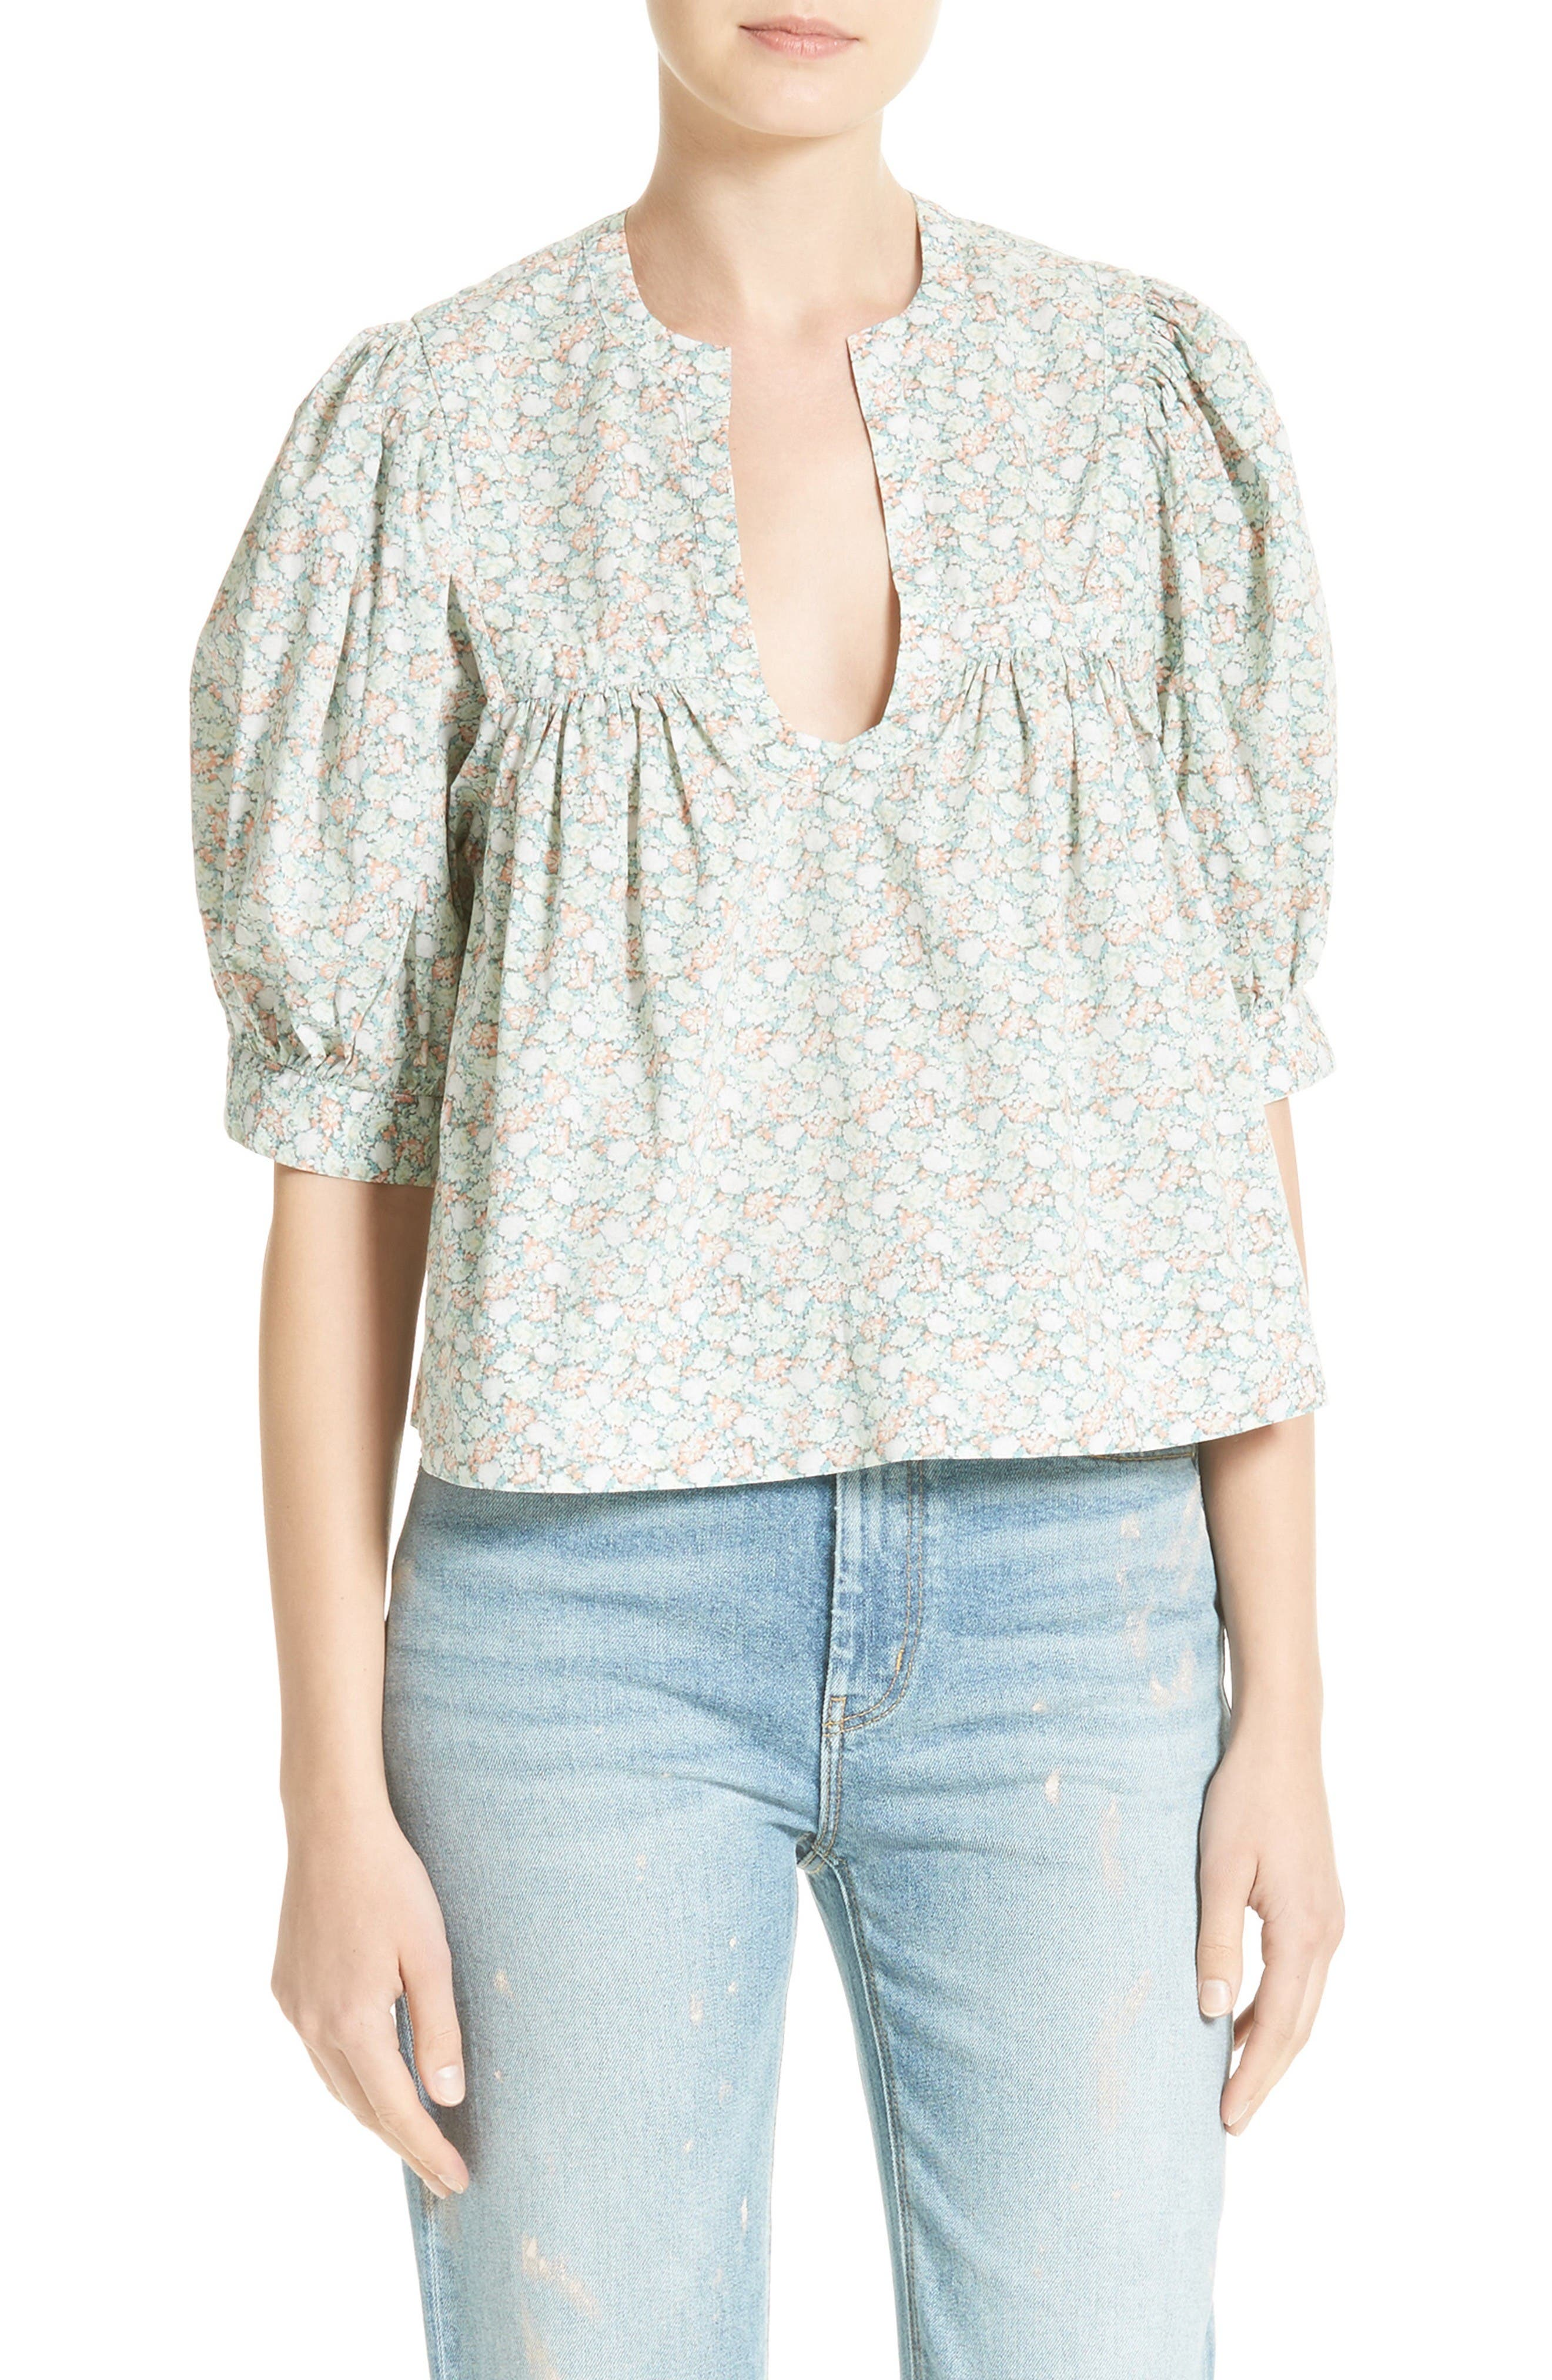 Alternate Image 1 Selected - La Vie Rebecca Taylor Adelie Crop Blouse